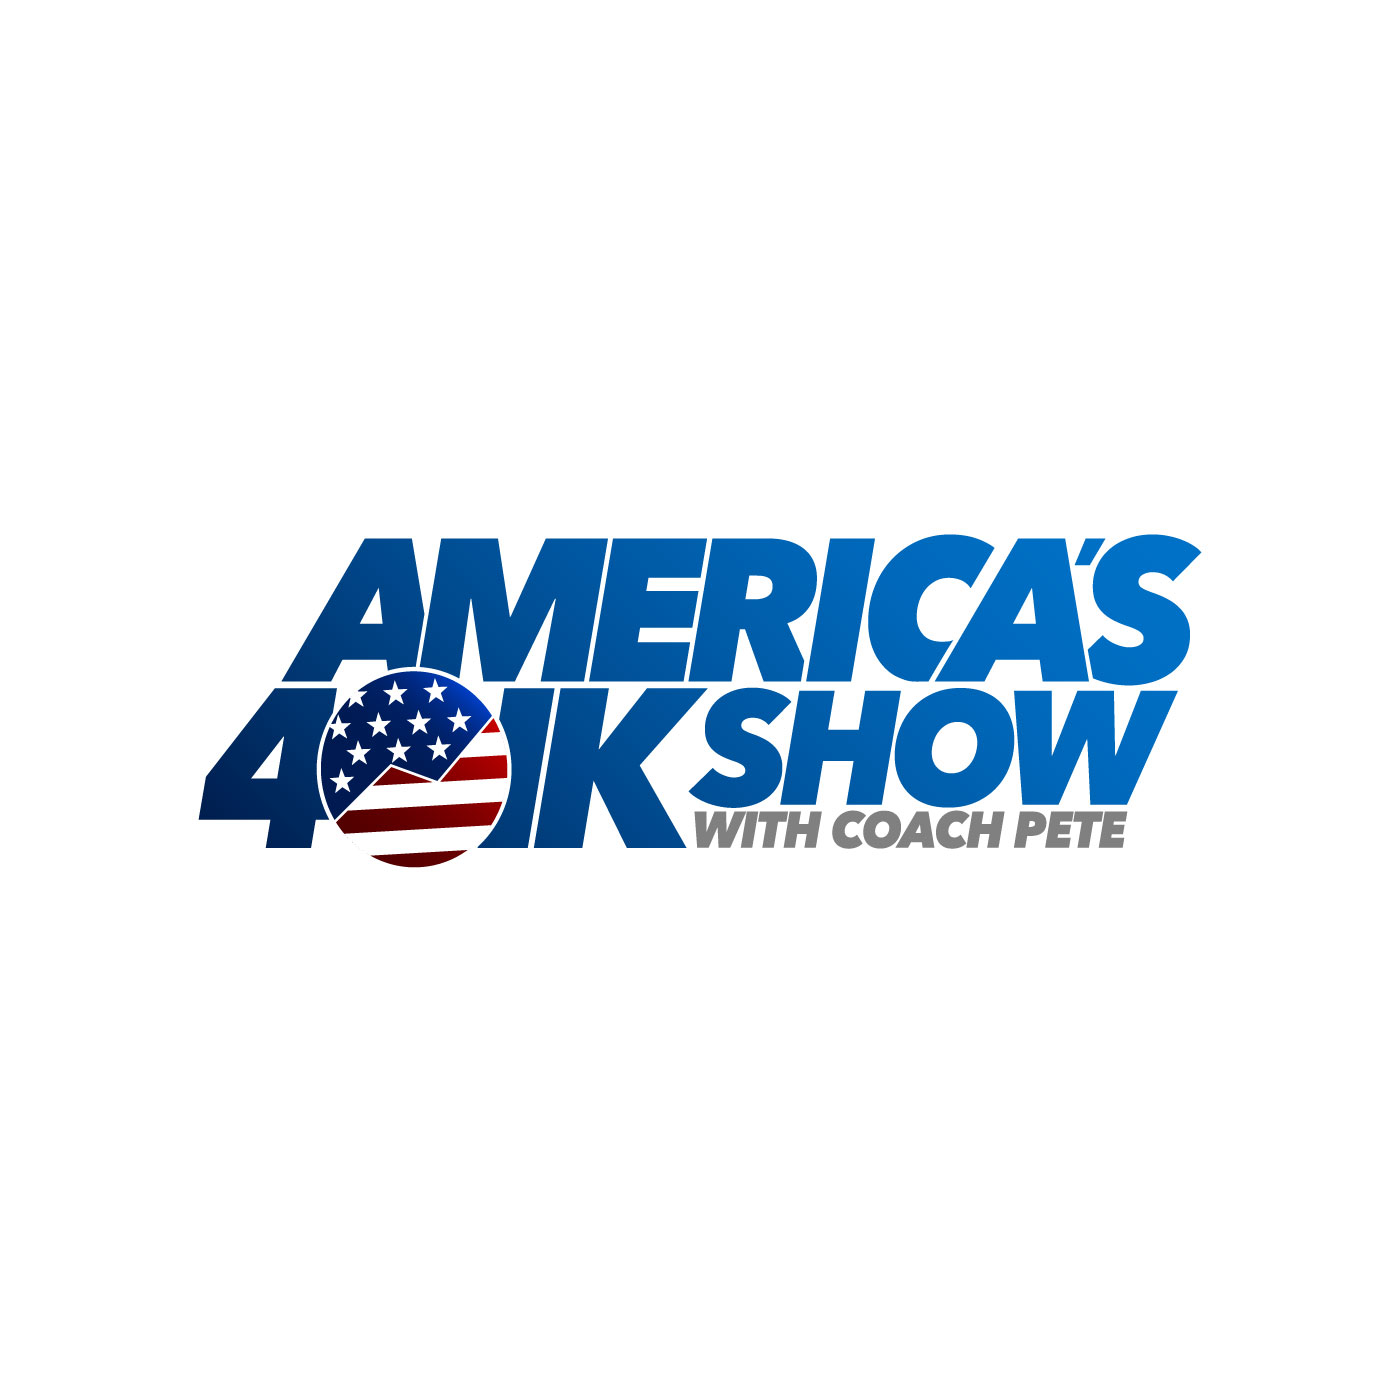 America's 401k Show with Coach Pete show art